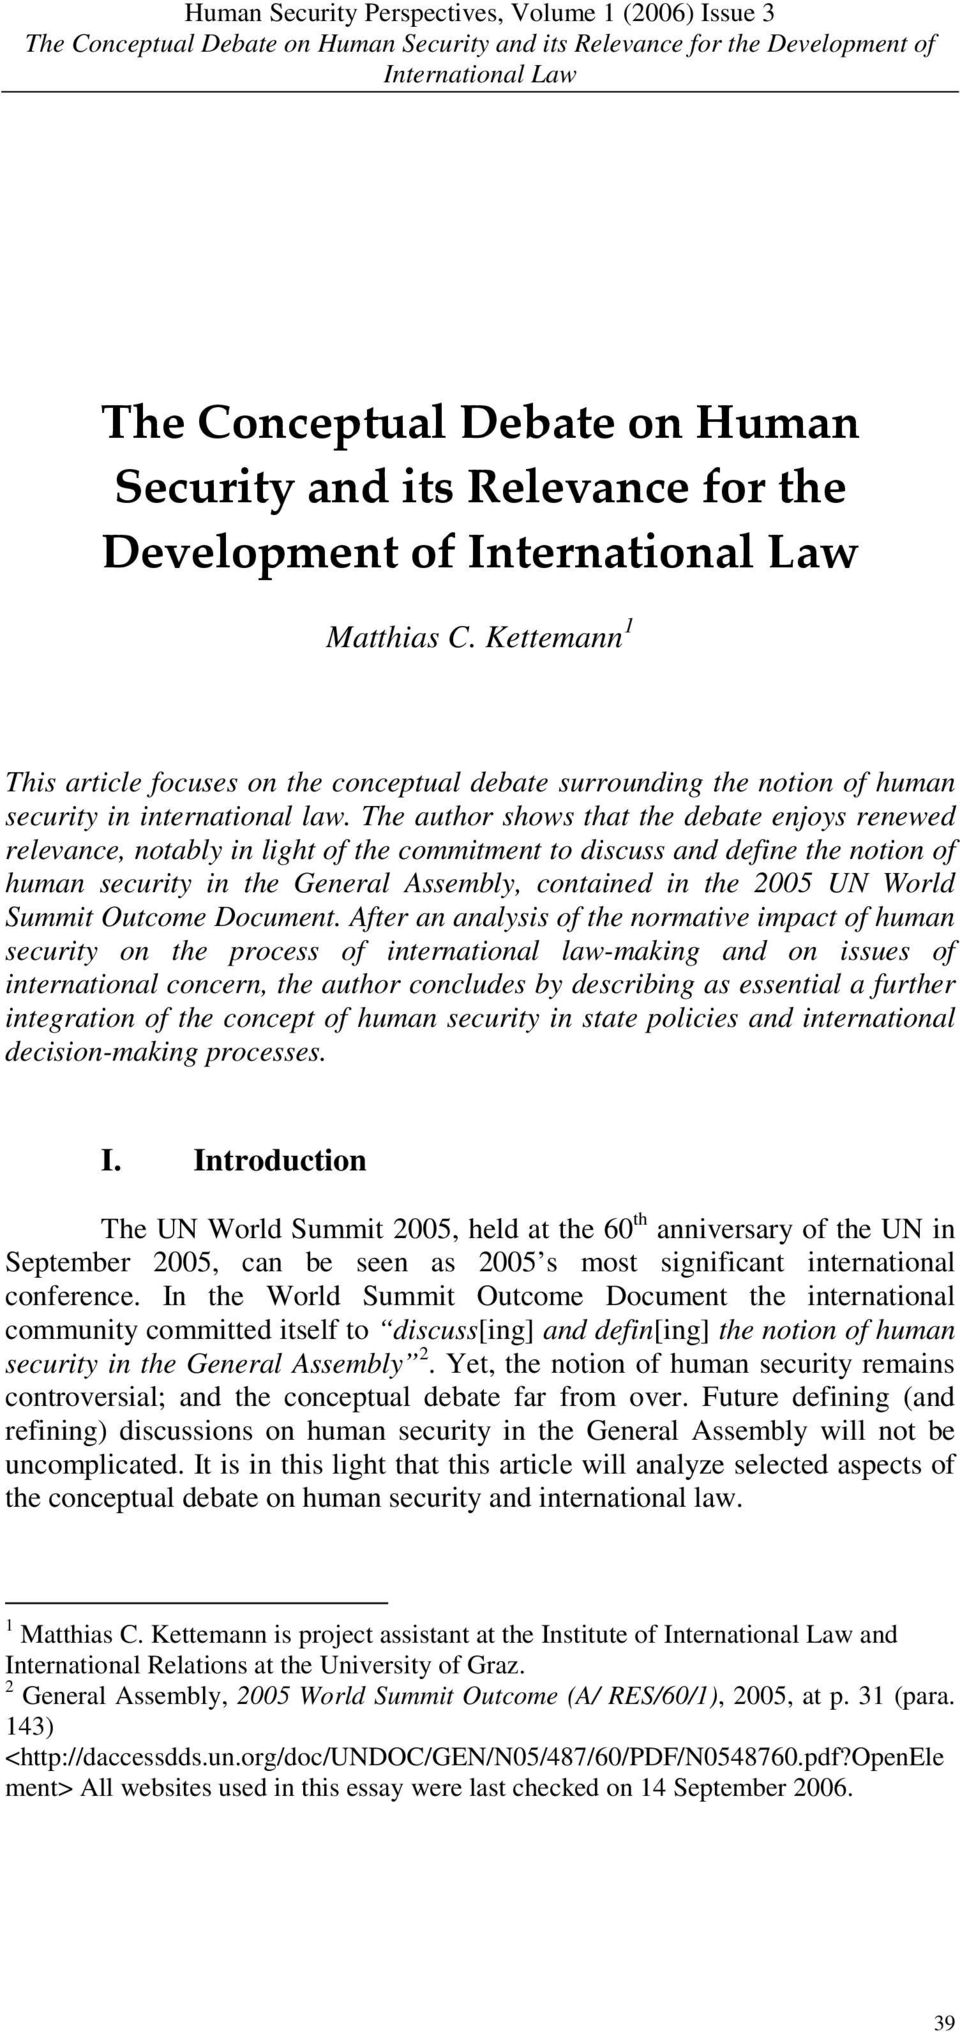 The author shows that the debate enjoys renewed relevance, notably in light of the commitment to discuss and define the notion of human security in the General Assembly, contained in the 2005 UN